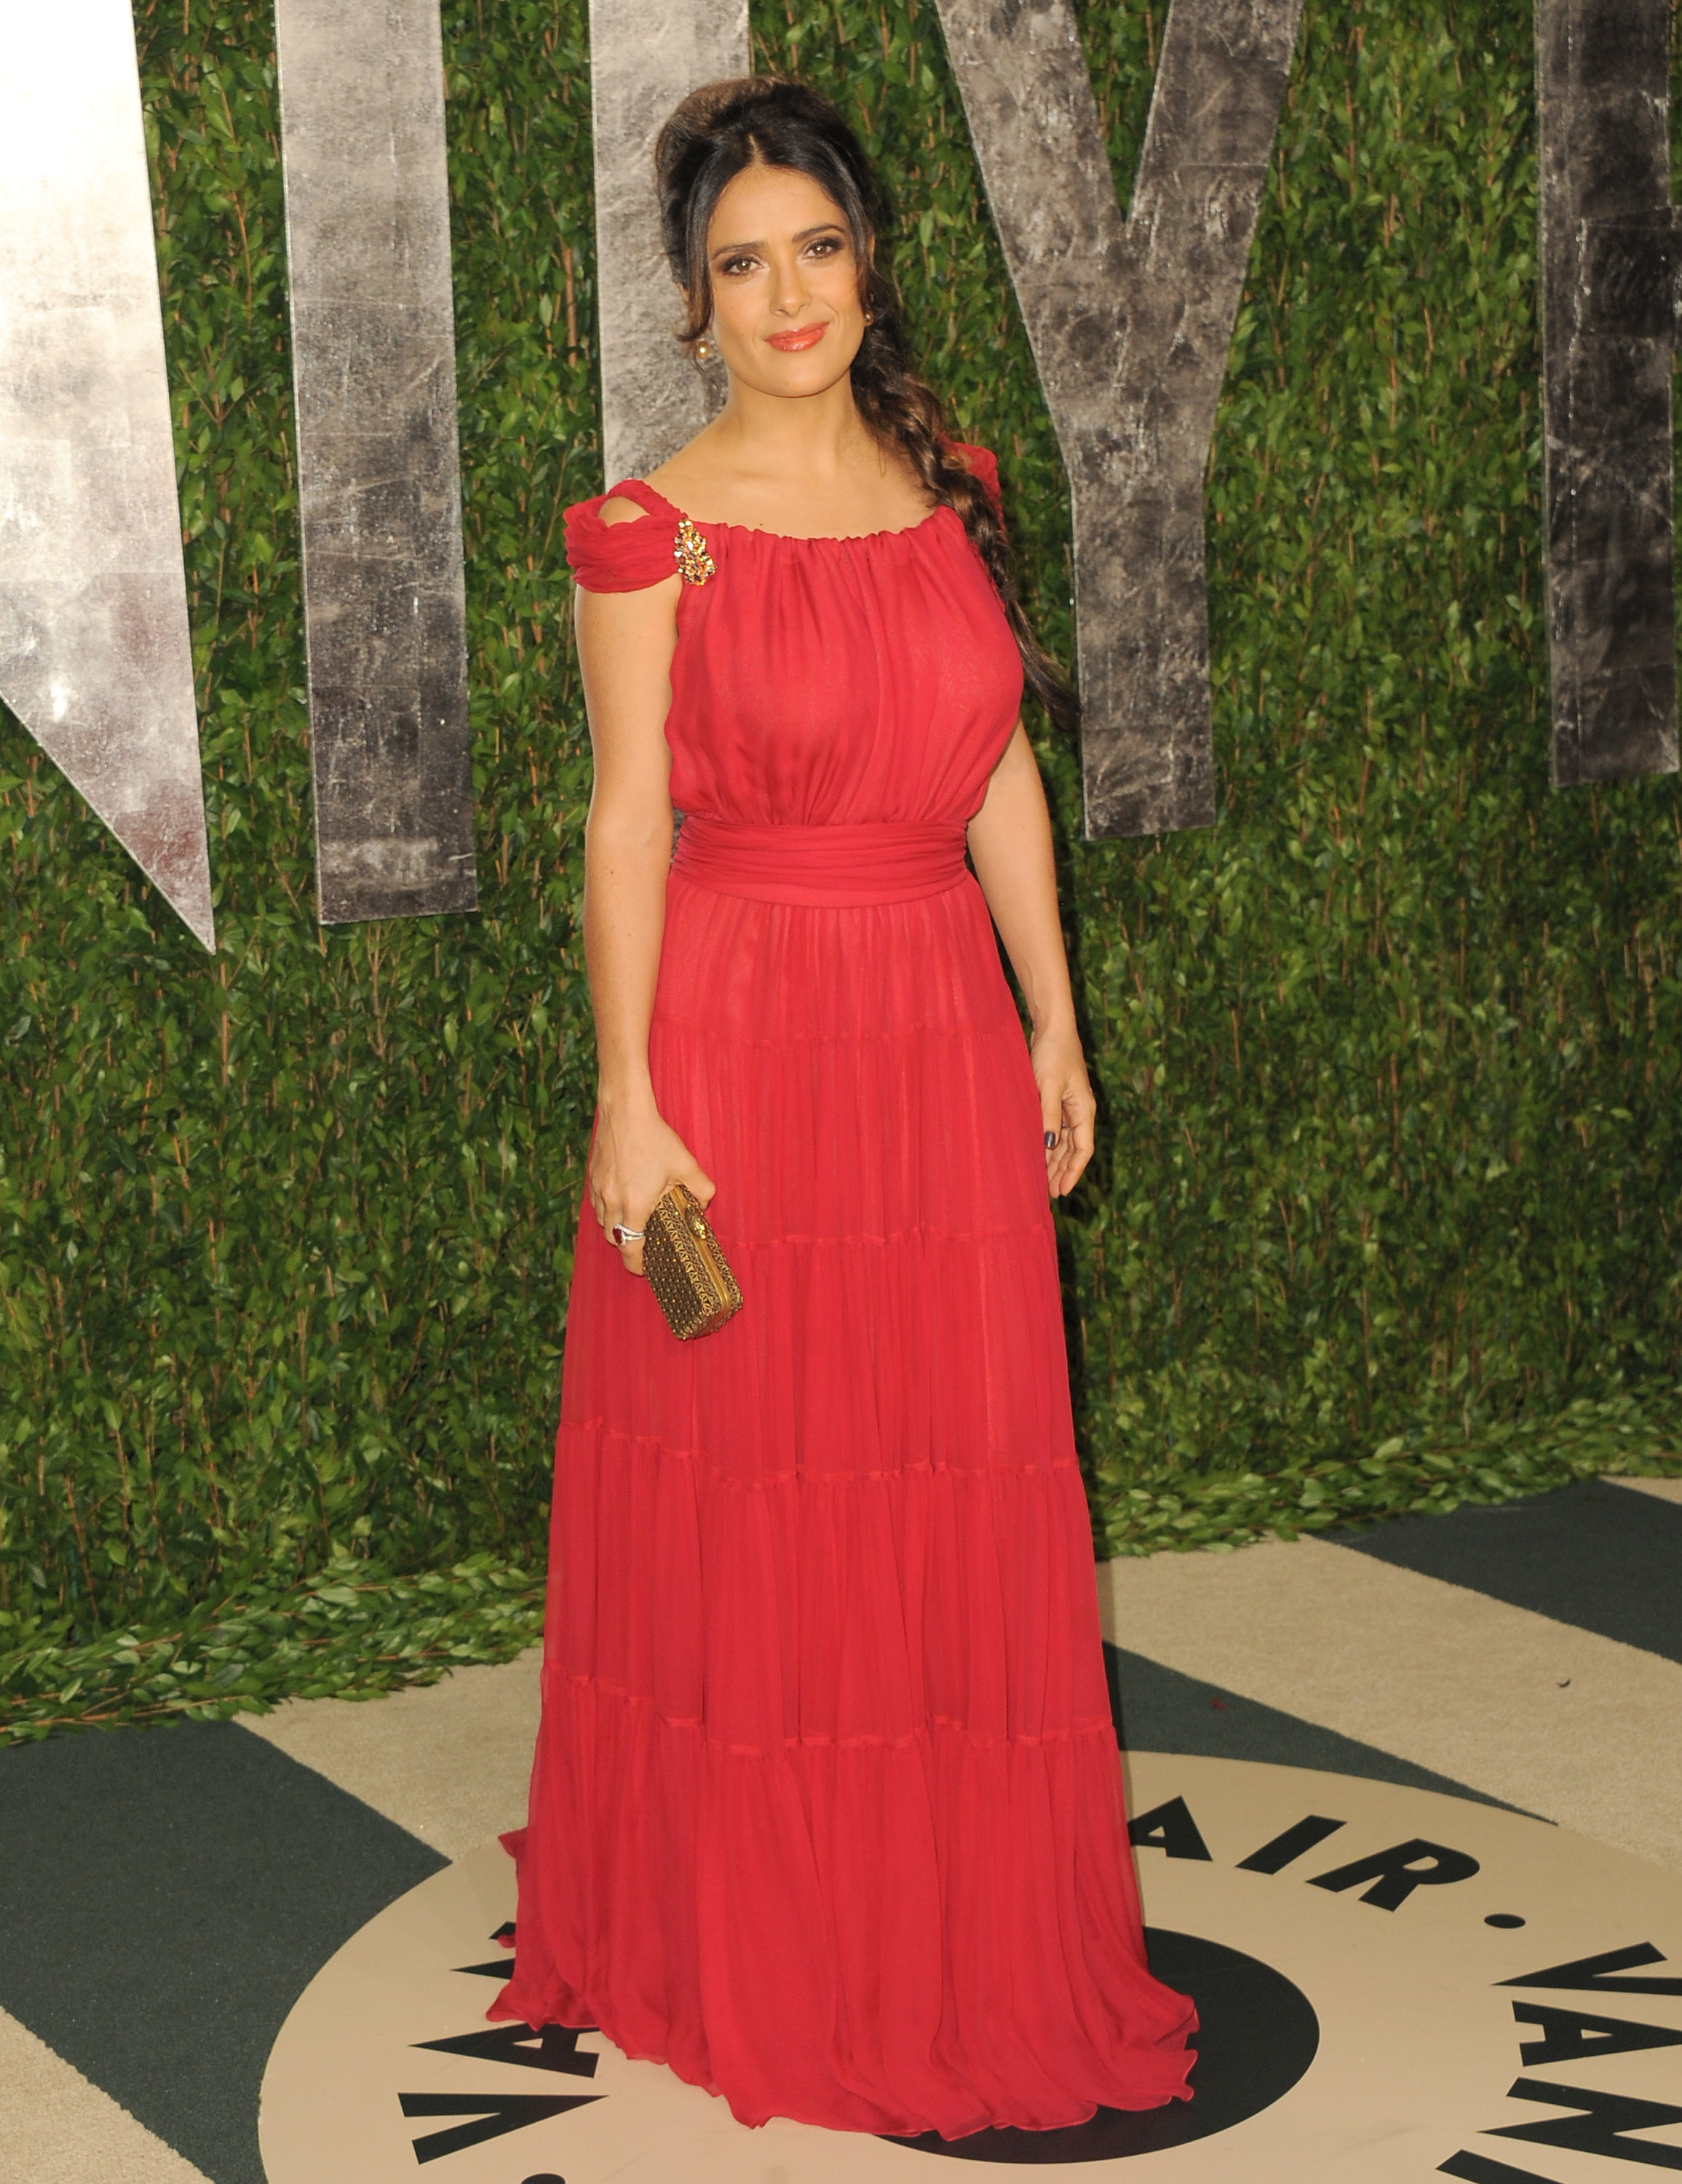 Salma Hayek looked stunning with her long Rapunzel-inspired braid and red Yves Saint Laurent silk chiffon gown.